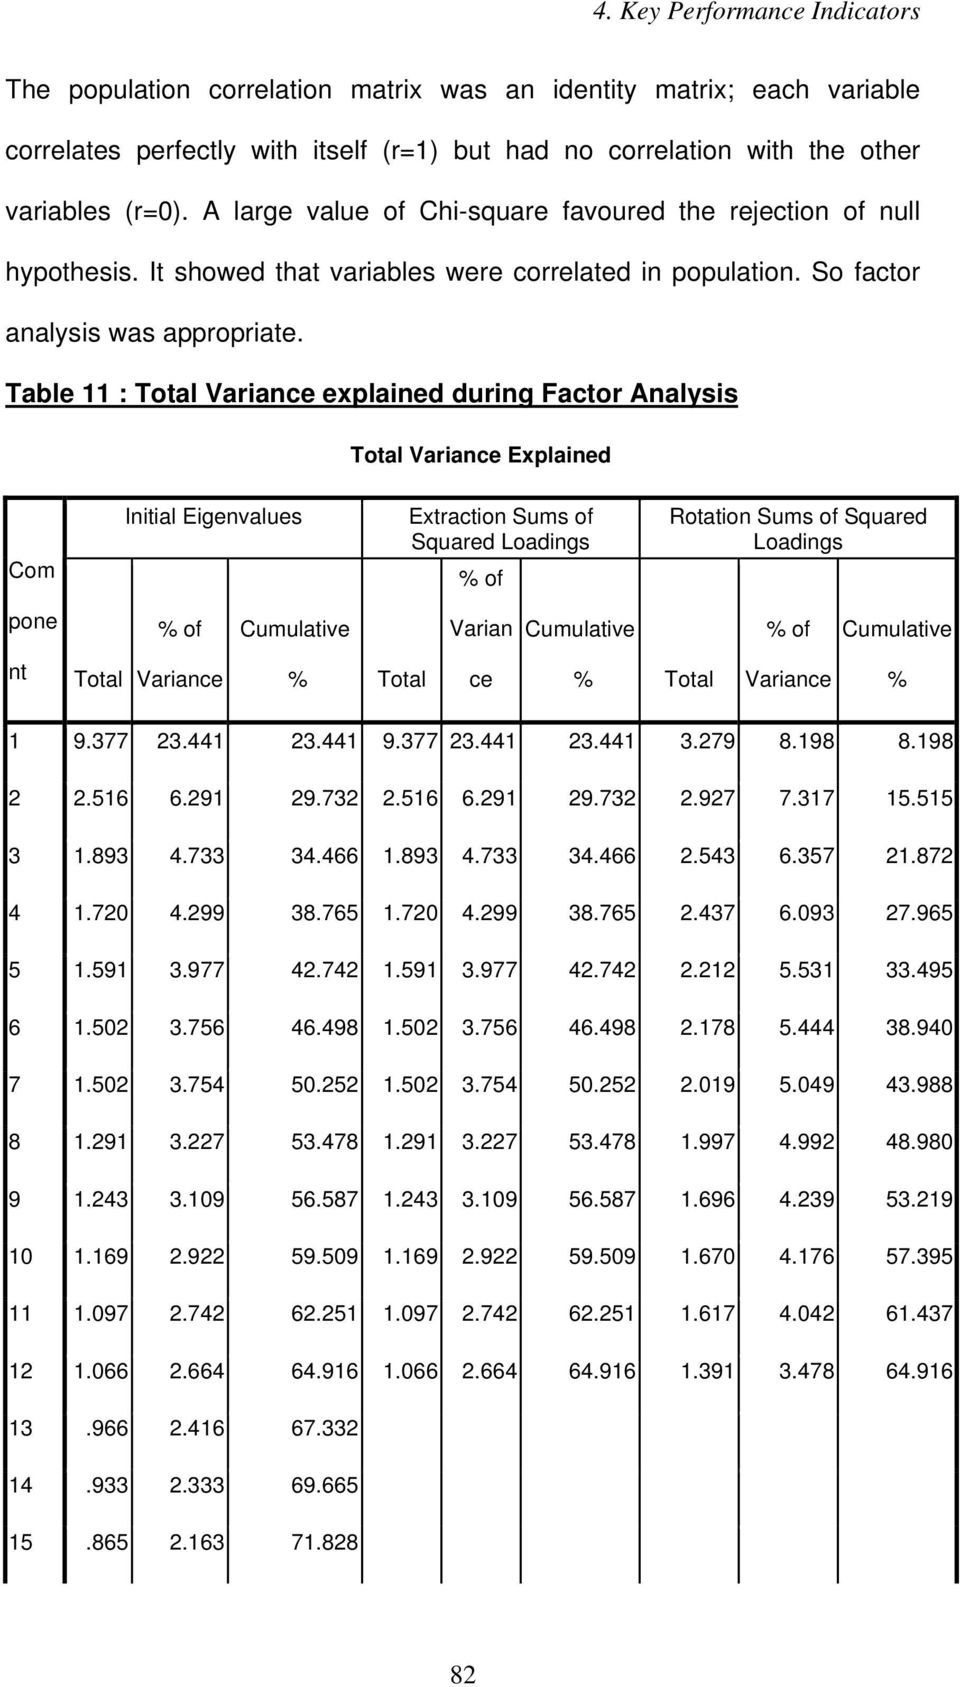 Table 11 : Total Variance explained during Factor Analysis Total Variance Explained Com Initial Eigenvalues Extraction Sums of Squared Loadings % of Rotation Sums of Squared Loadings pone % of